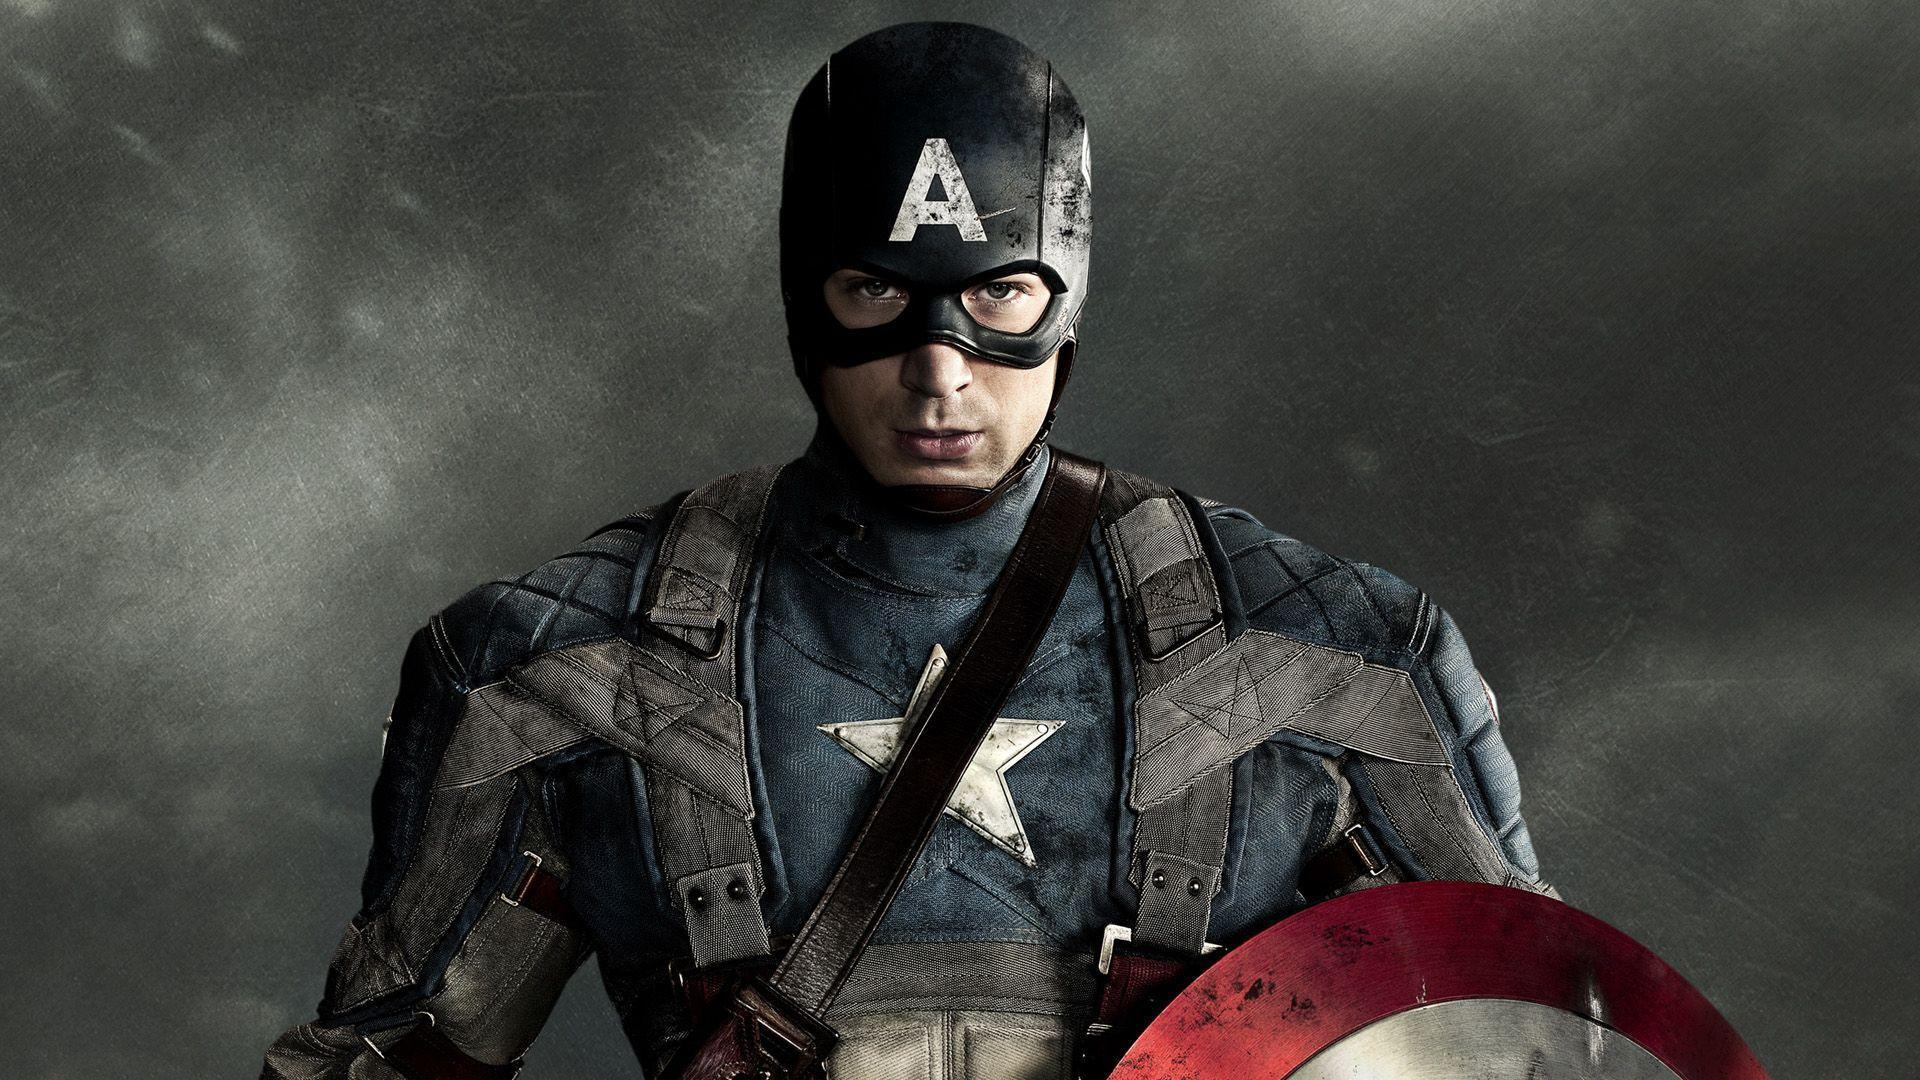 Captain America: The Winter Soldier HD Wallpaper Backgrounds 1920